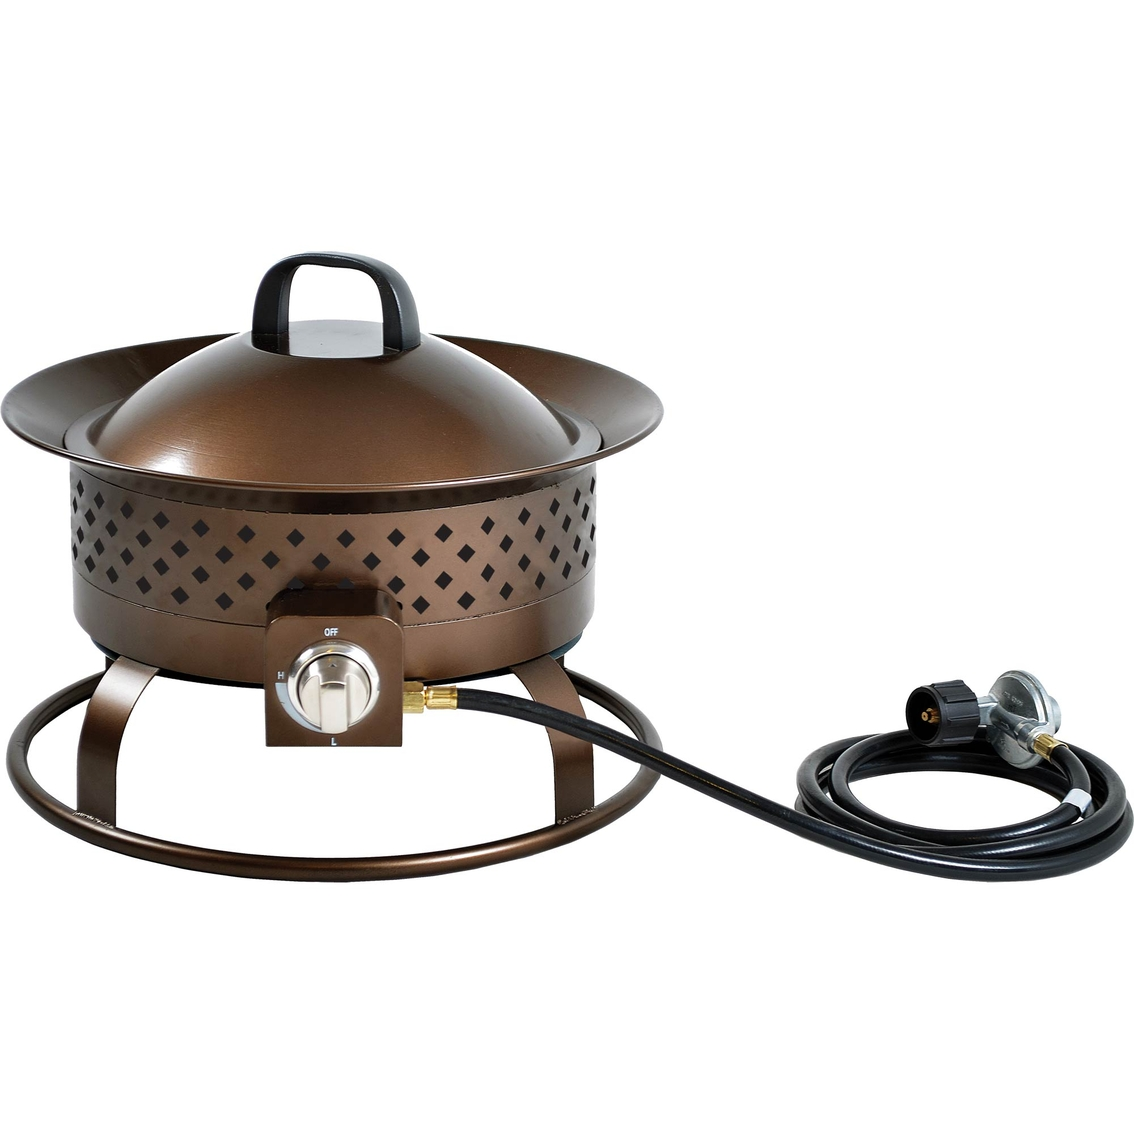 Portable Gas Fire Pits Outdoor: Bond Portable Gas Fire Pit